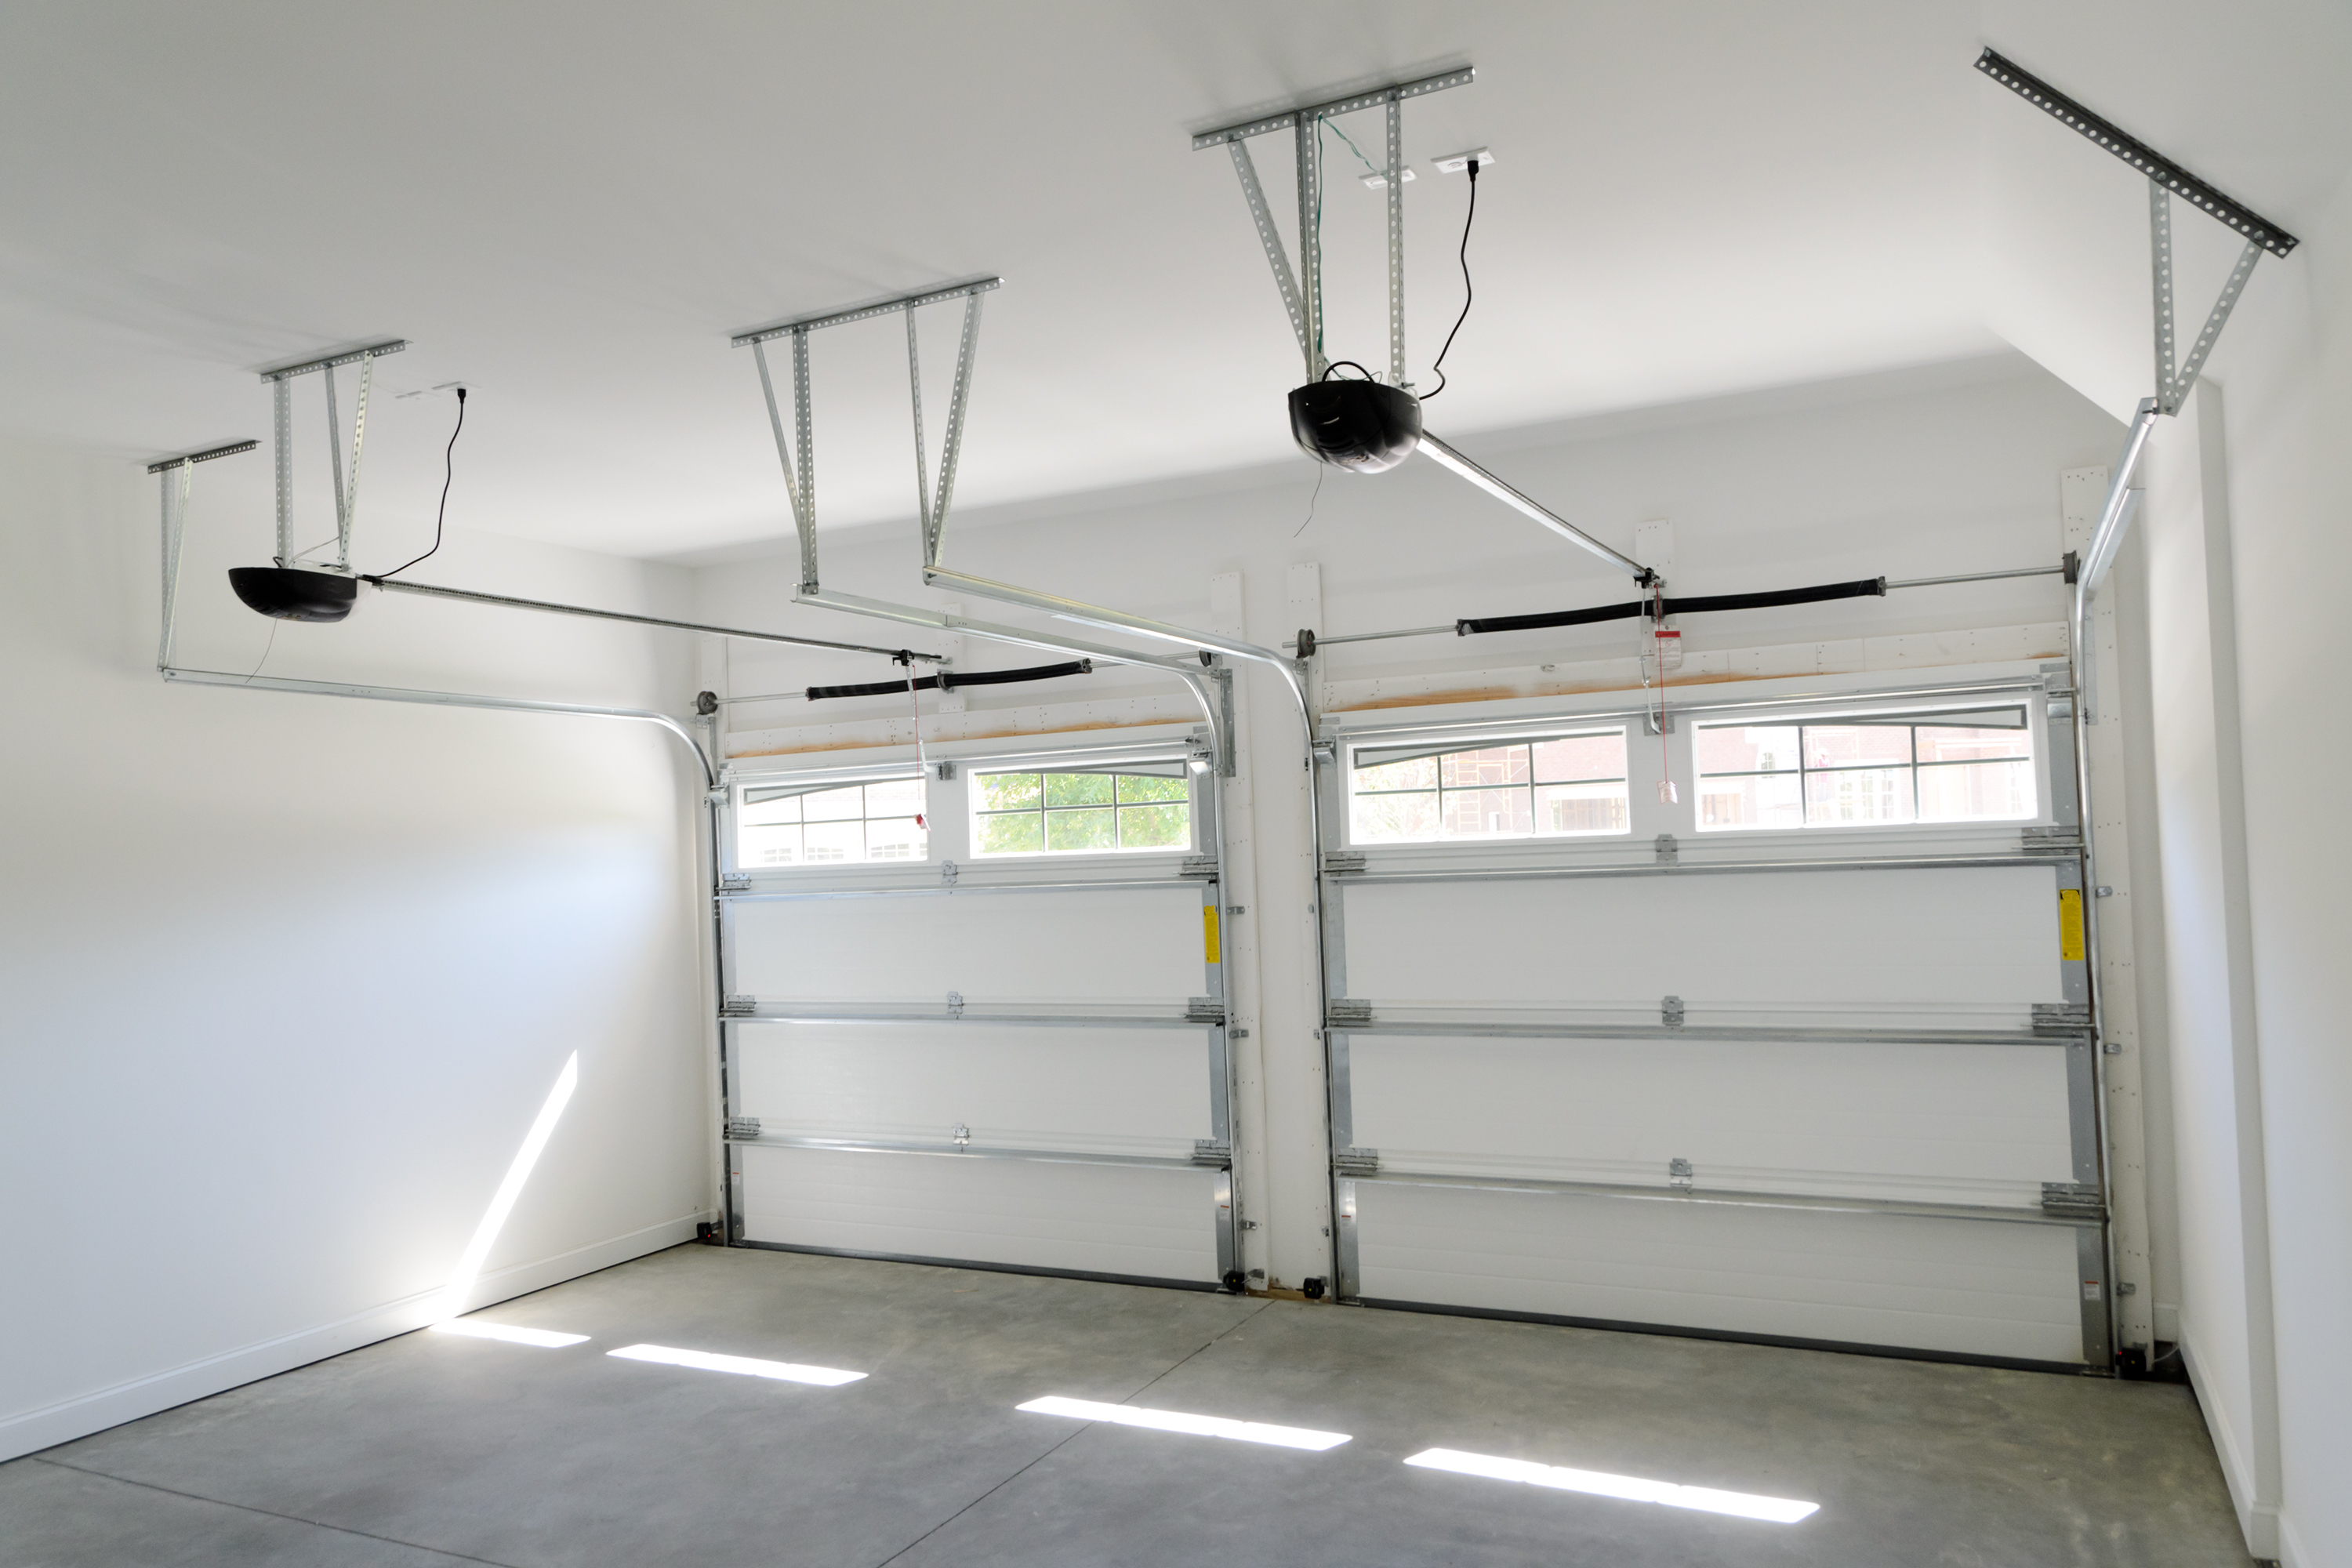 repair opener access overhead door service garage milwaukee doors sales main eckertgaragedoors